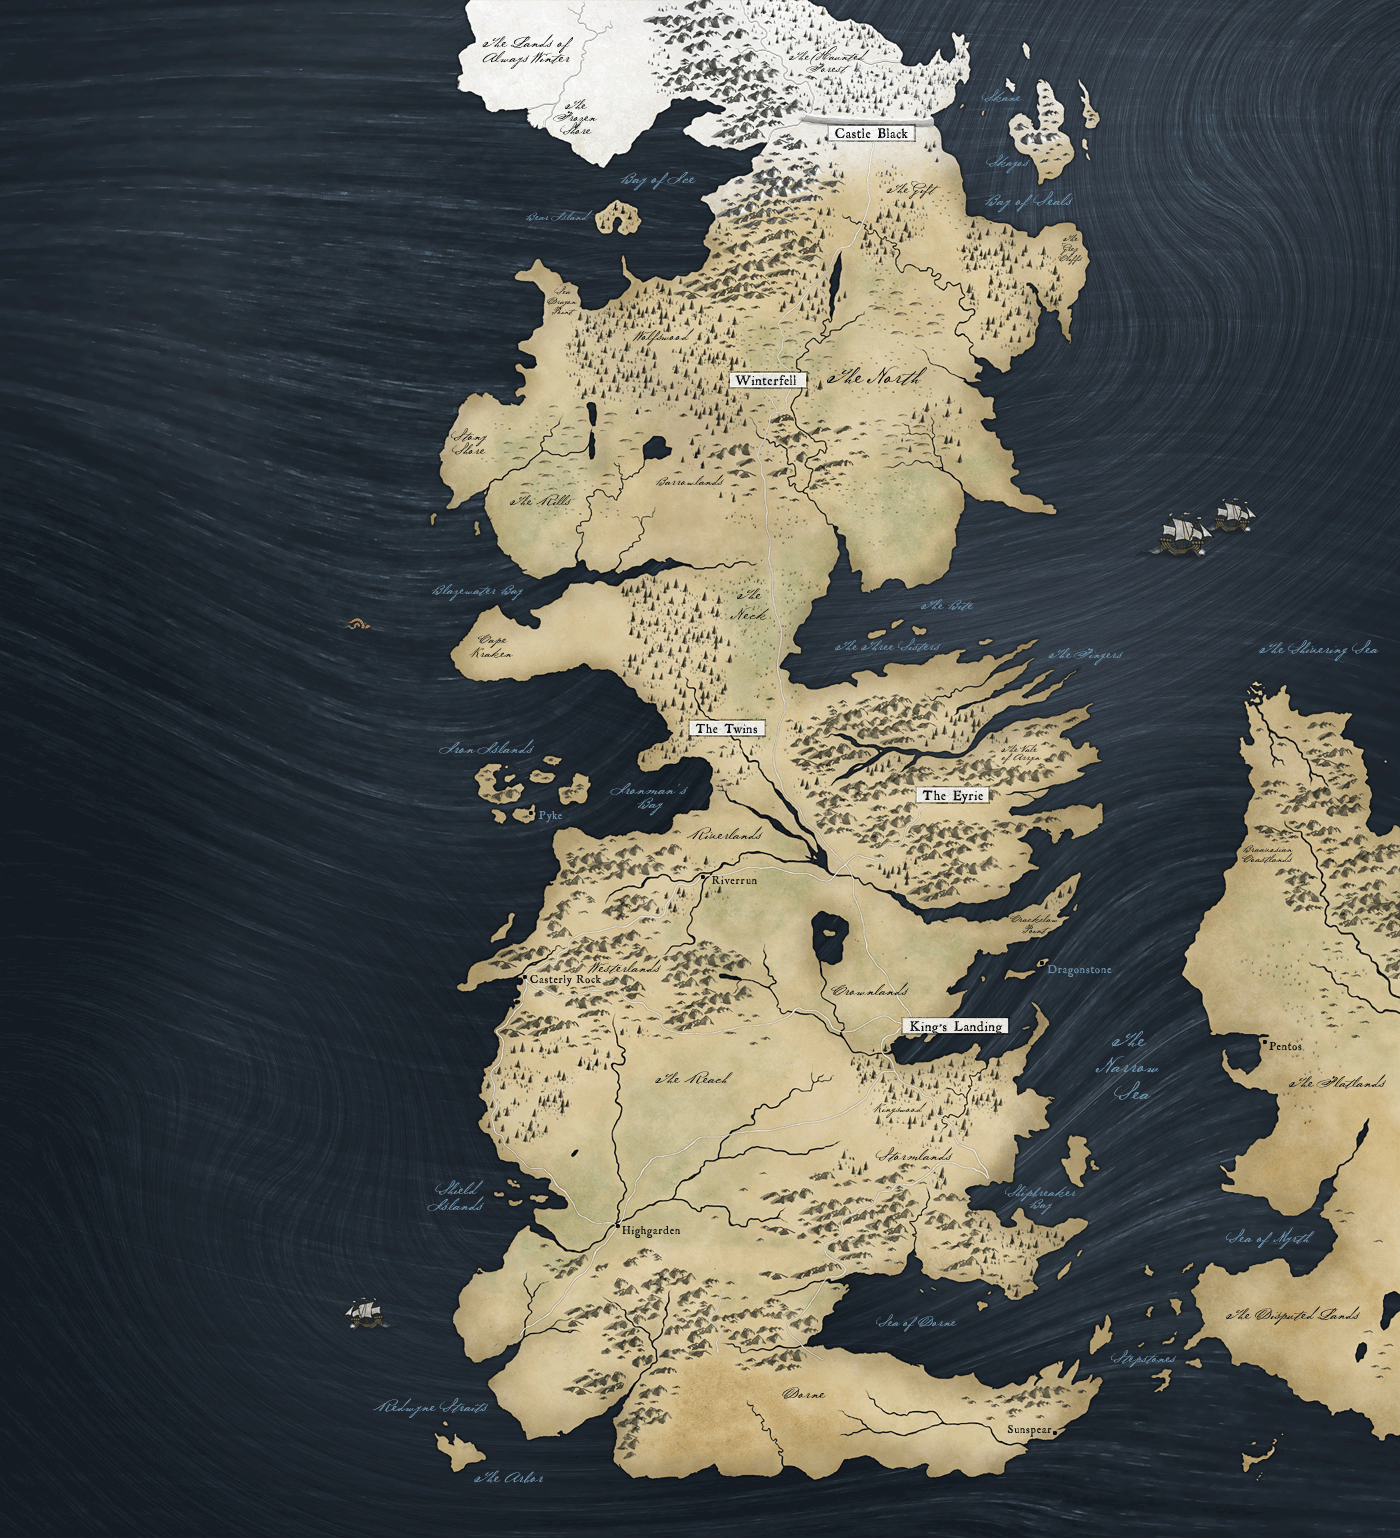 Game of thrones poised in the riverlands for further war with the game of thrones poised in the riverlands for further war with the lannisters gumiabroncs Gallery